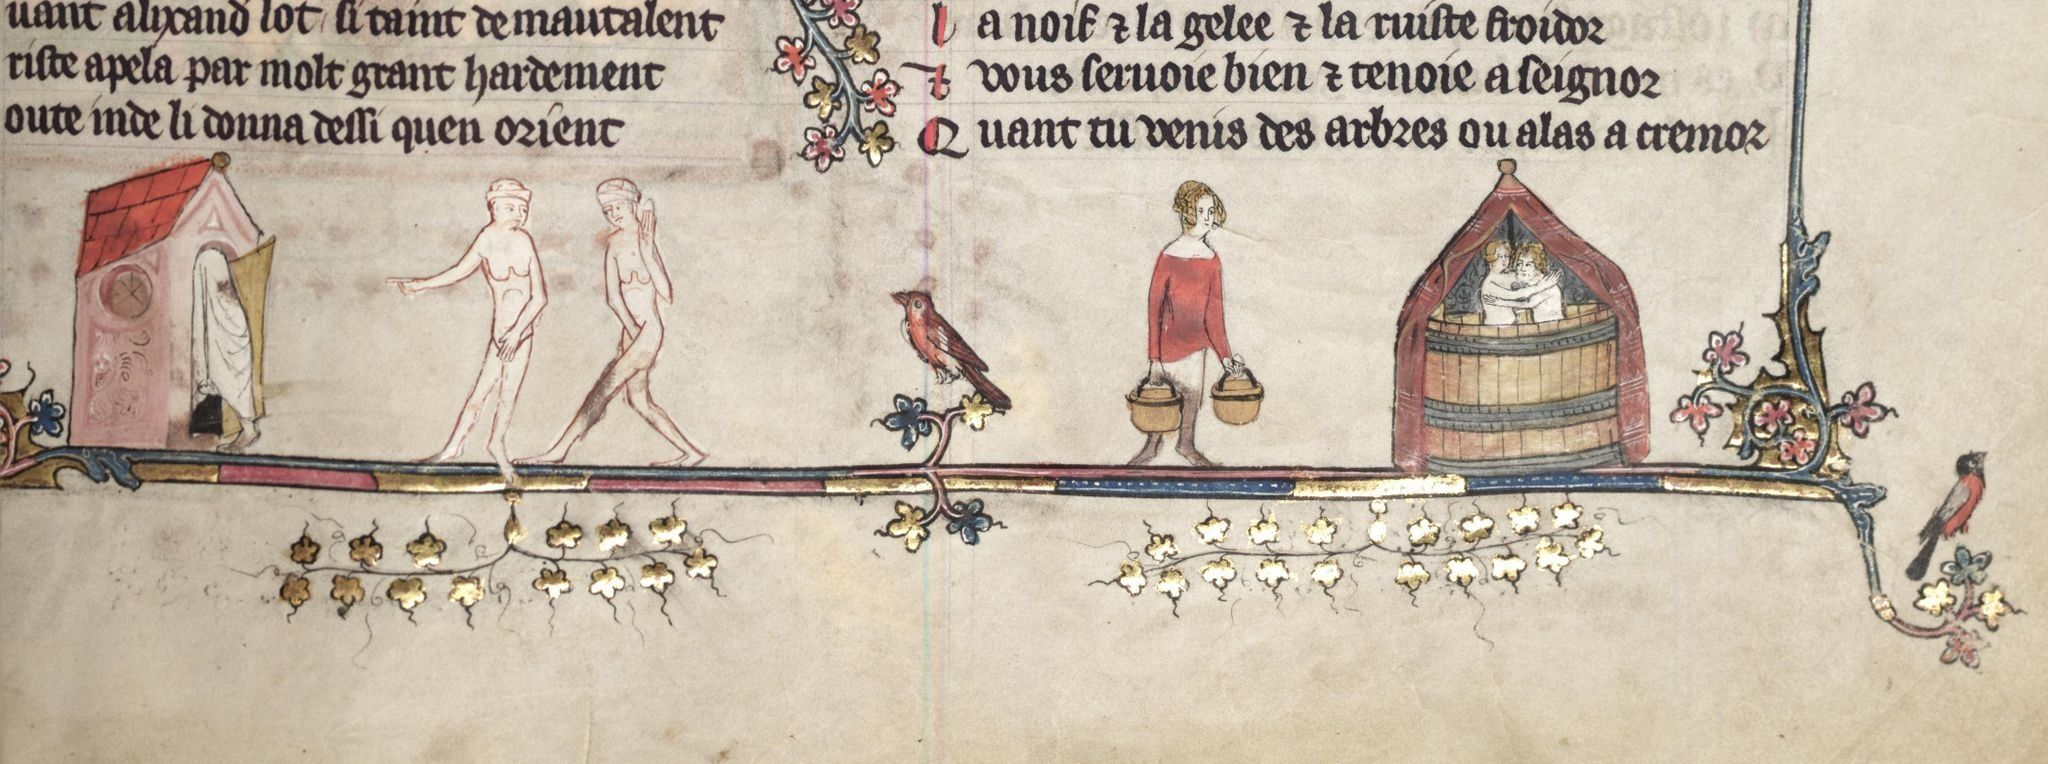 Taking baths in a bathhouse or sauna and a big tub under a tent. Oxford, Bodleian Library MS Bodley 264